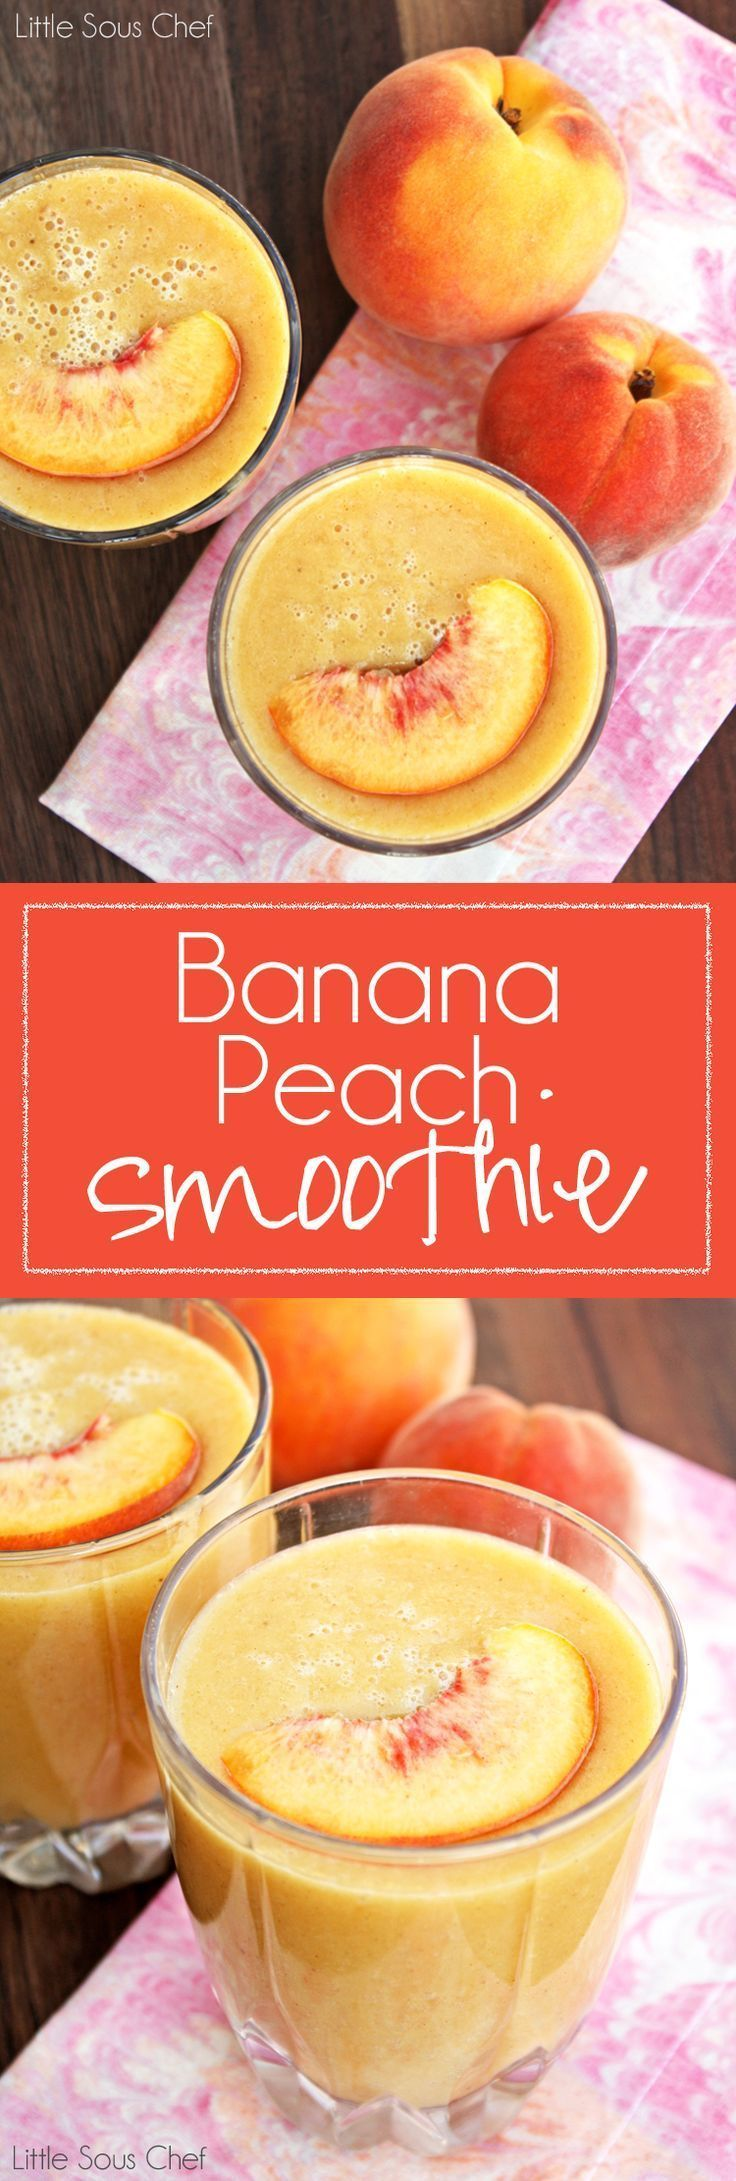 1000+ ideas about Peach Banana Smoothie on Pinterest ...